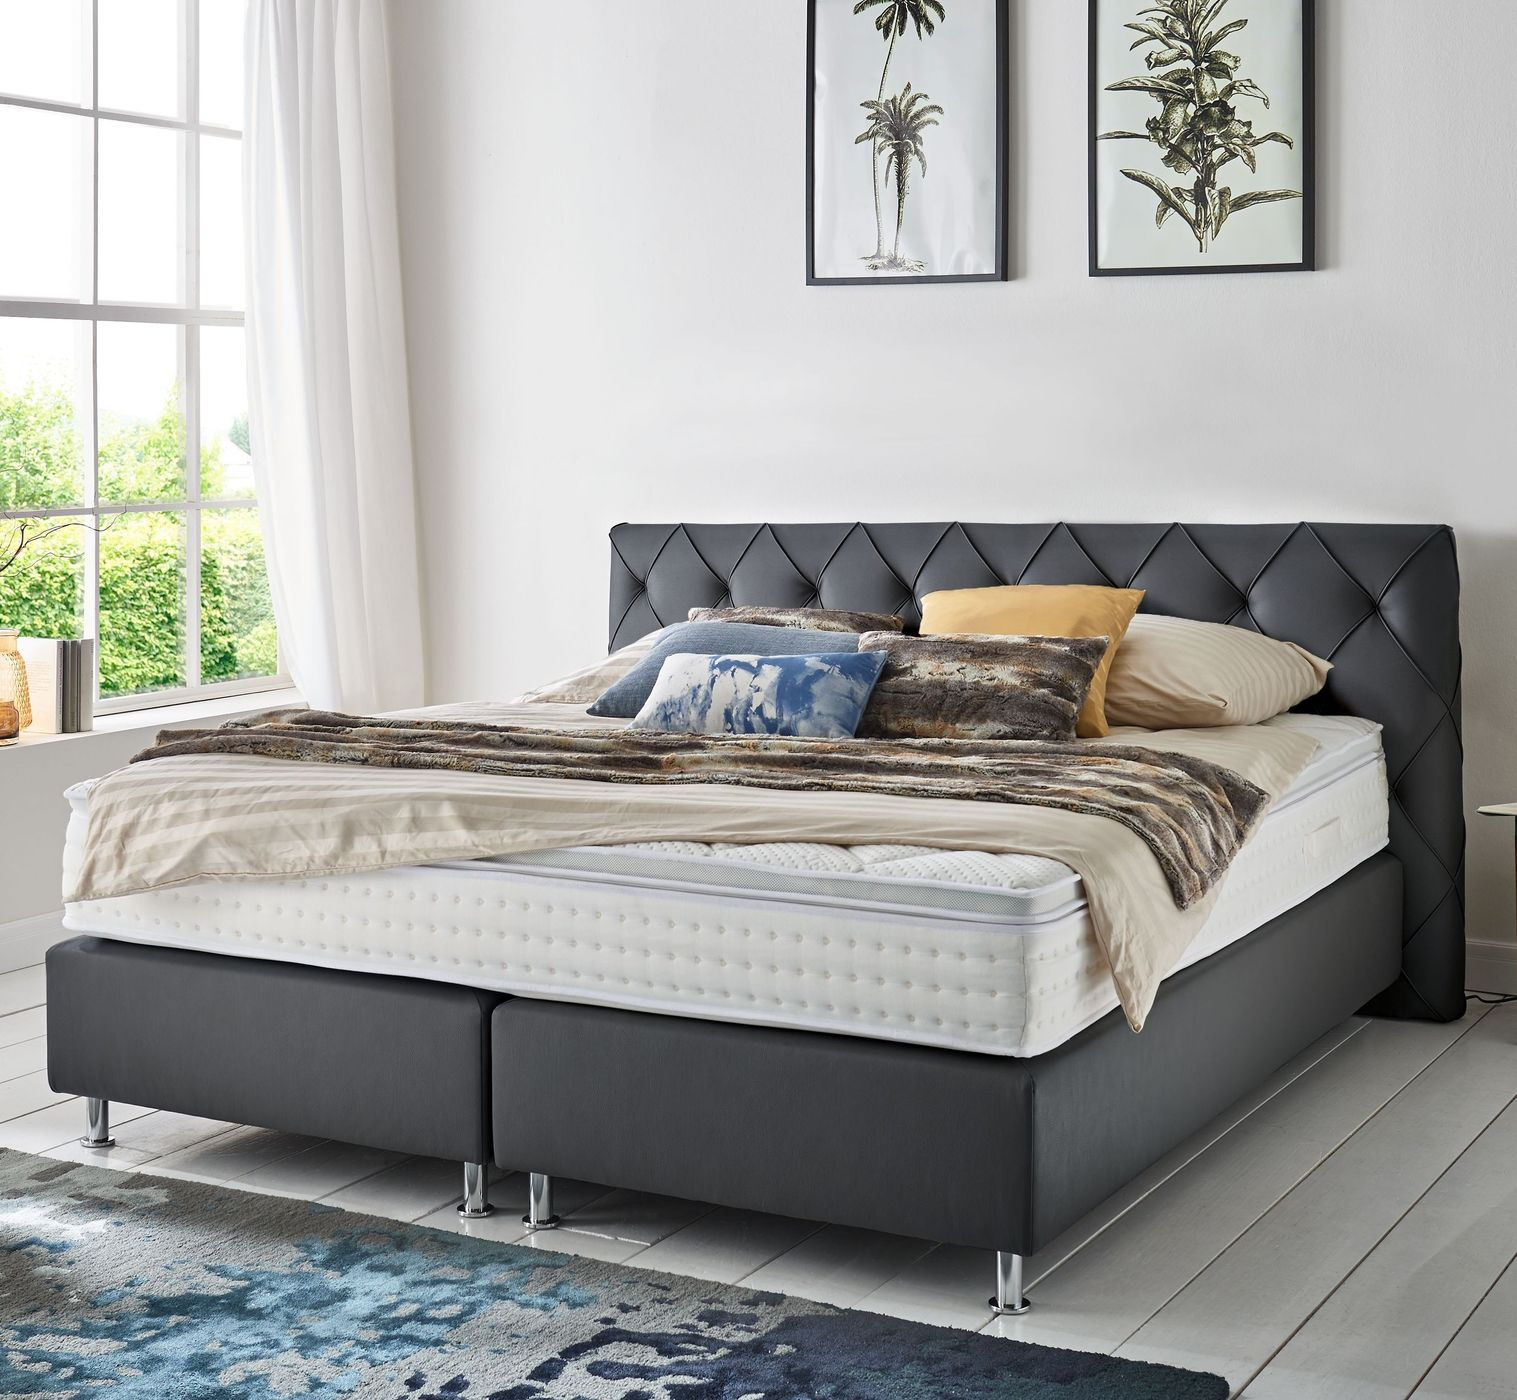 boxspringbett mit niedrigem kopfteil boxspringbetten shop boxspringbett mit hohem kopfteil. Black Bedroom Furniture Sets. Home Design Ideas